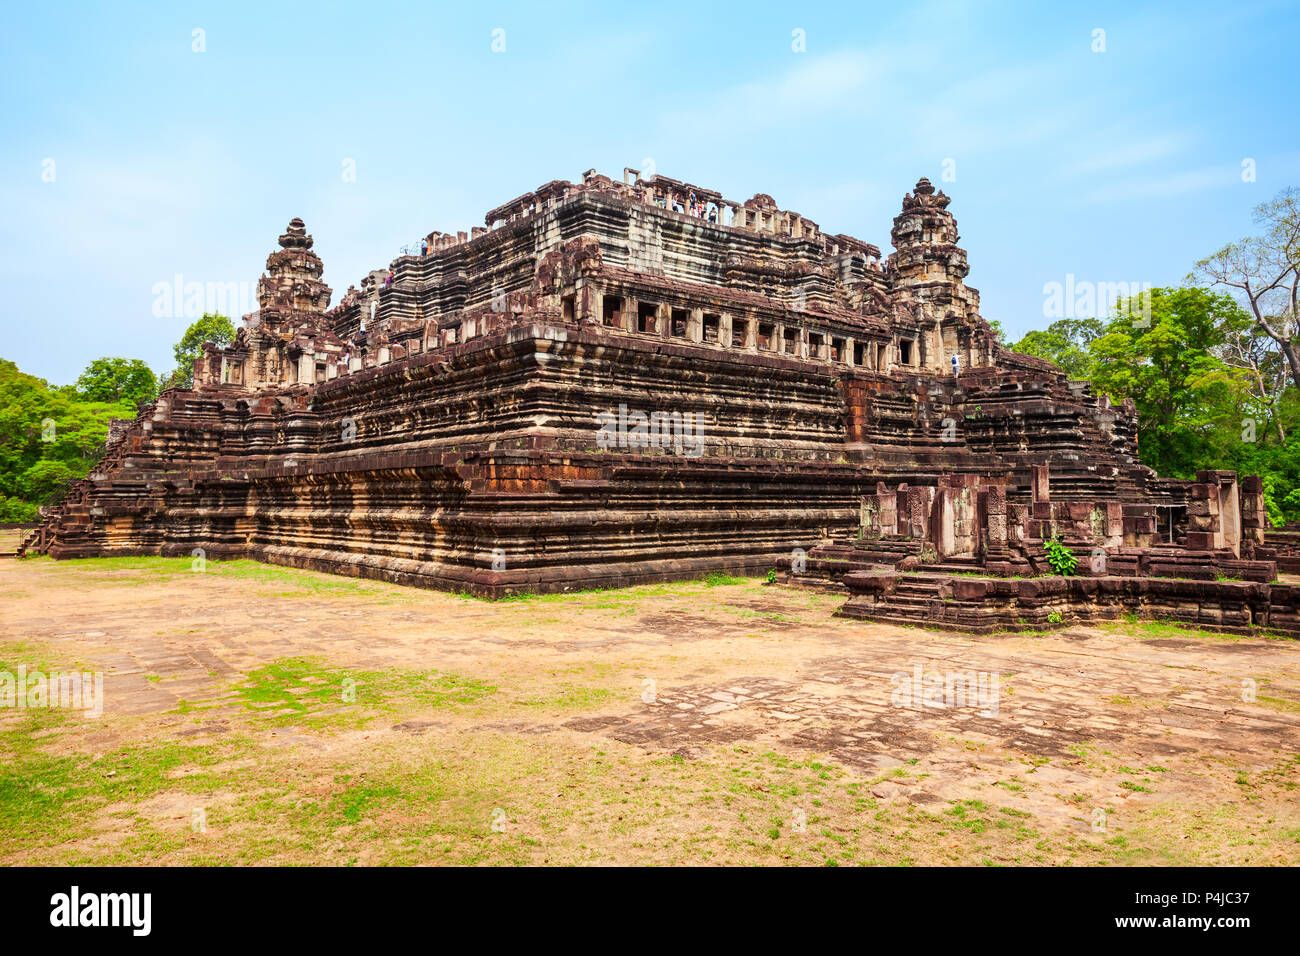 The Baphuon is a temple at Angkor, Cambodia. Baphuon is located in Angkor Thom, northwest of the Bayon. - Stock Image